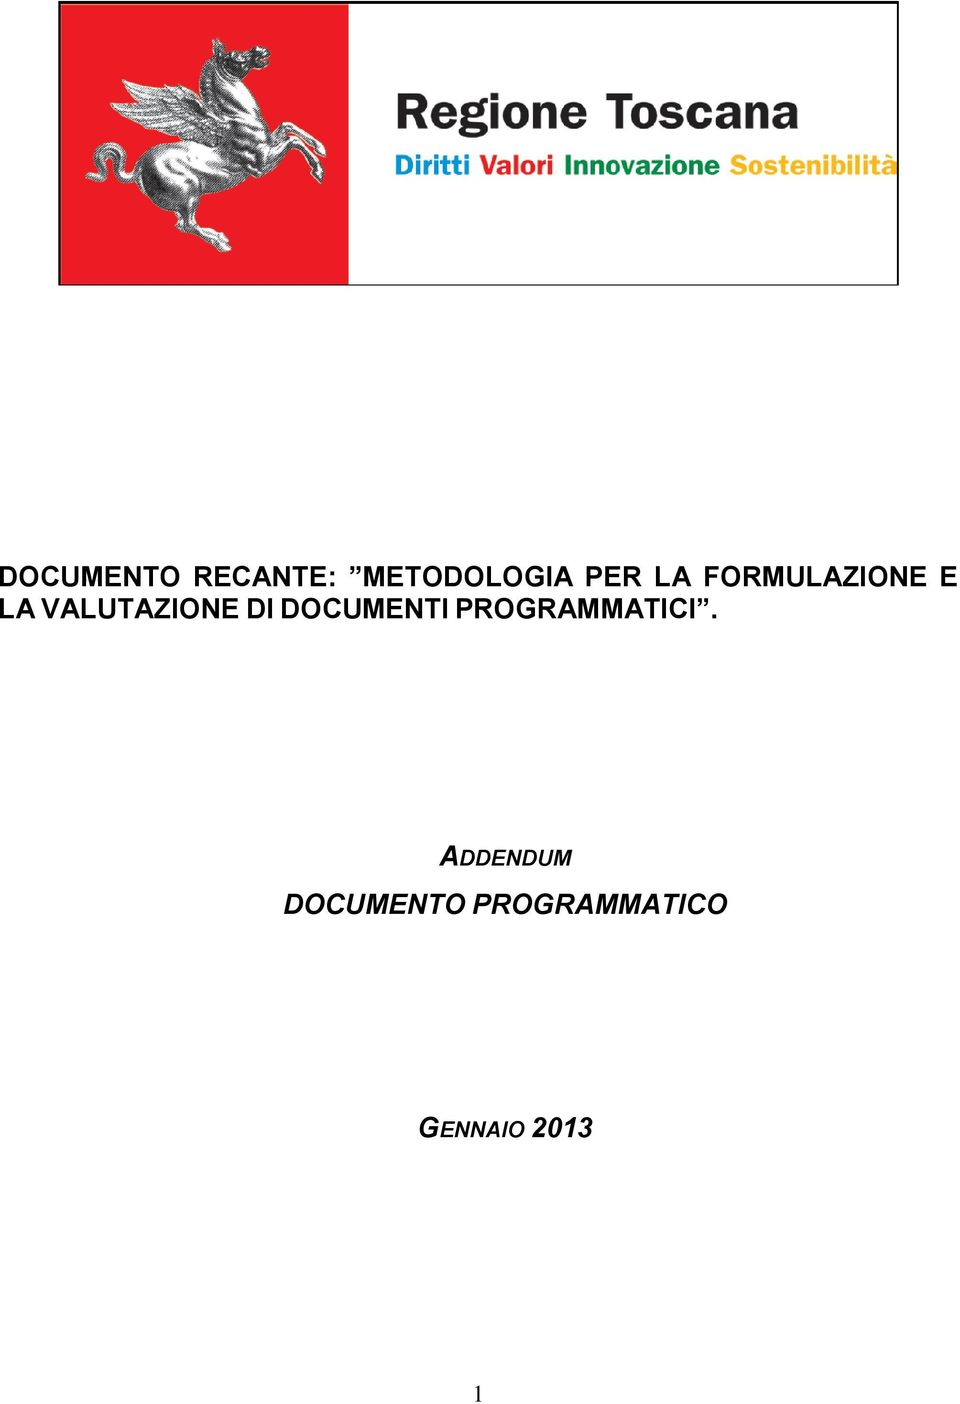 DOCUMENTI PROGRAMMATICI.